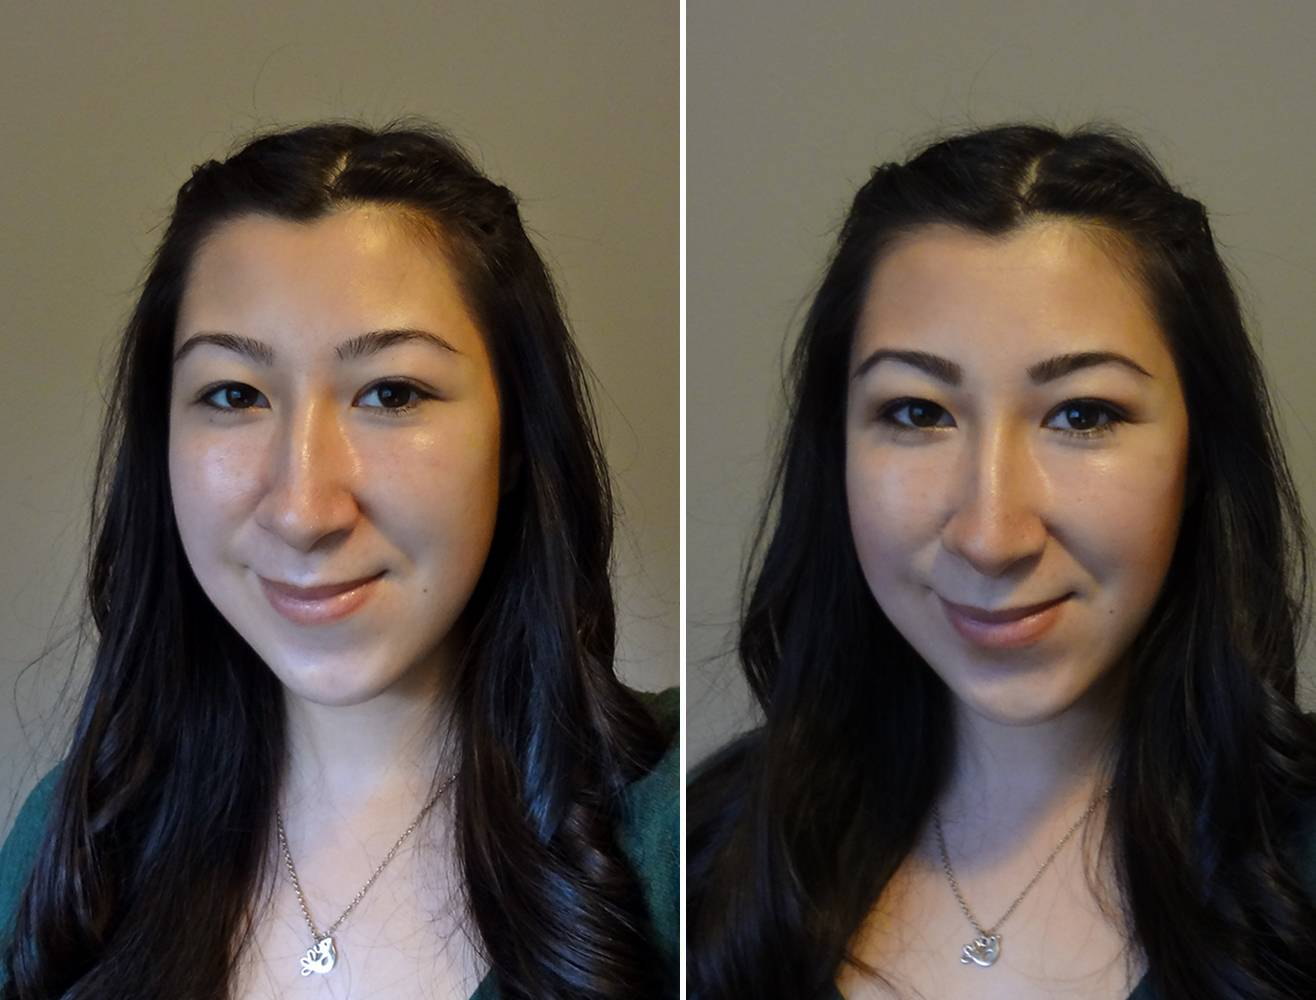 Highlight and Contouring Before and After